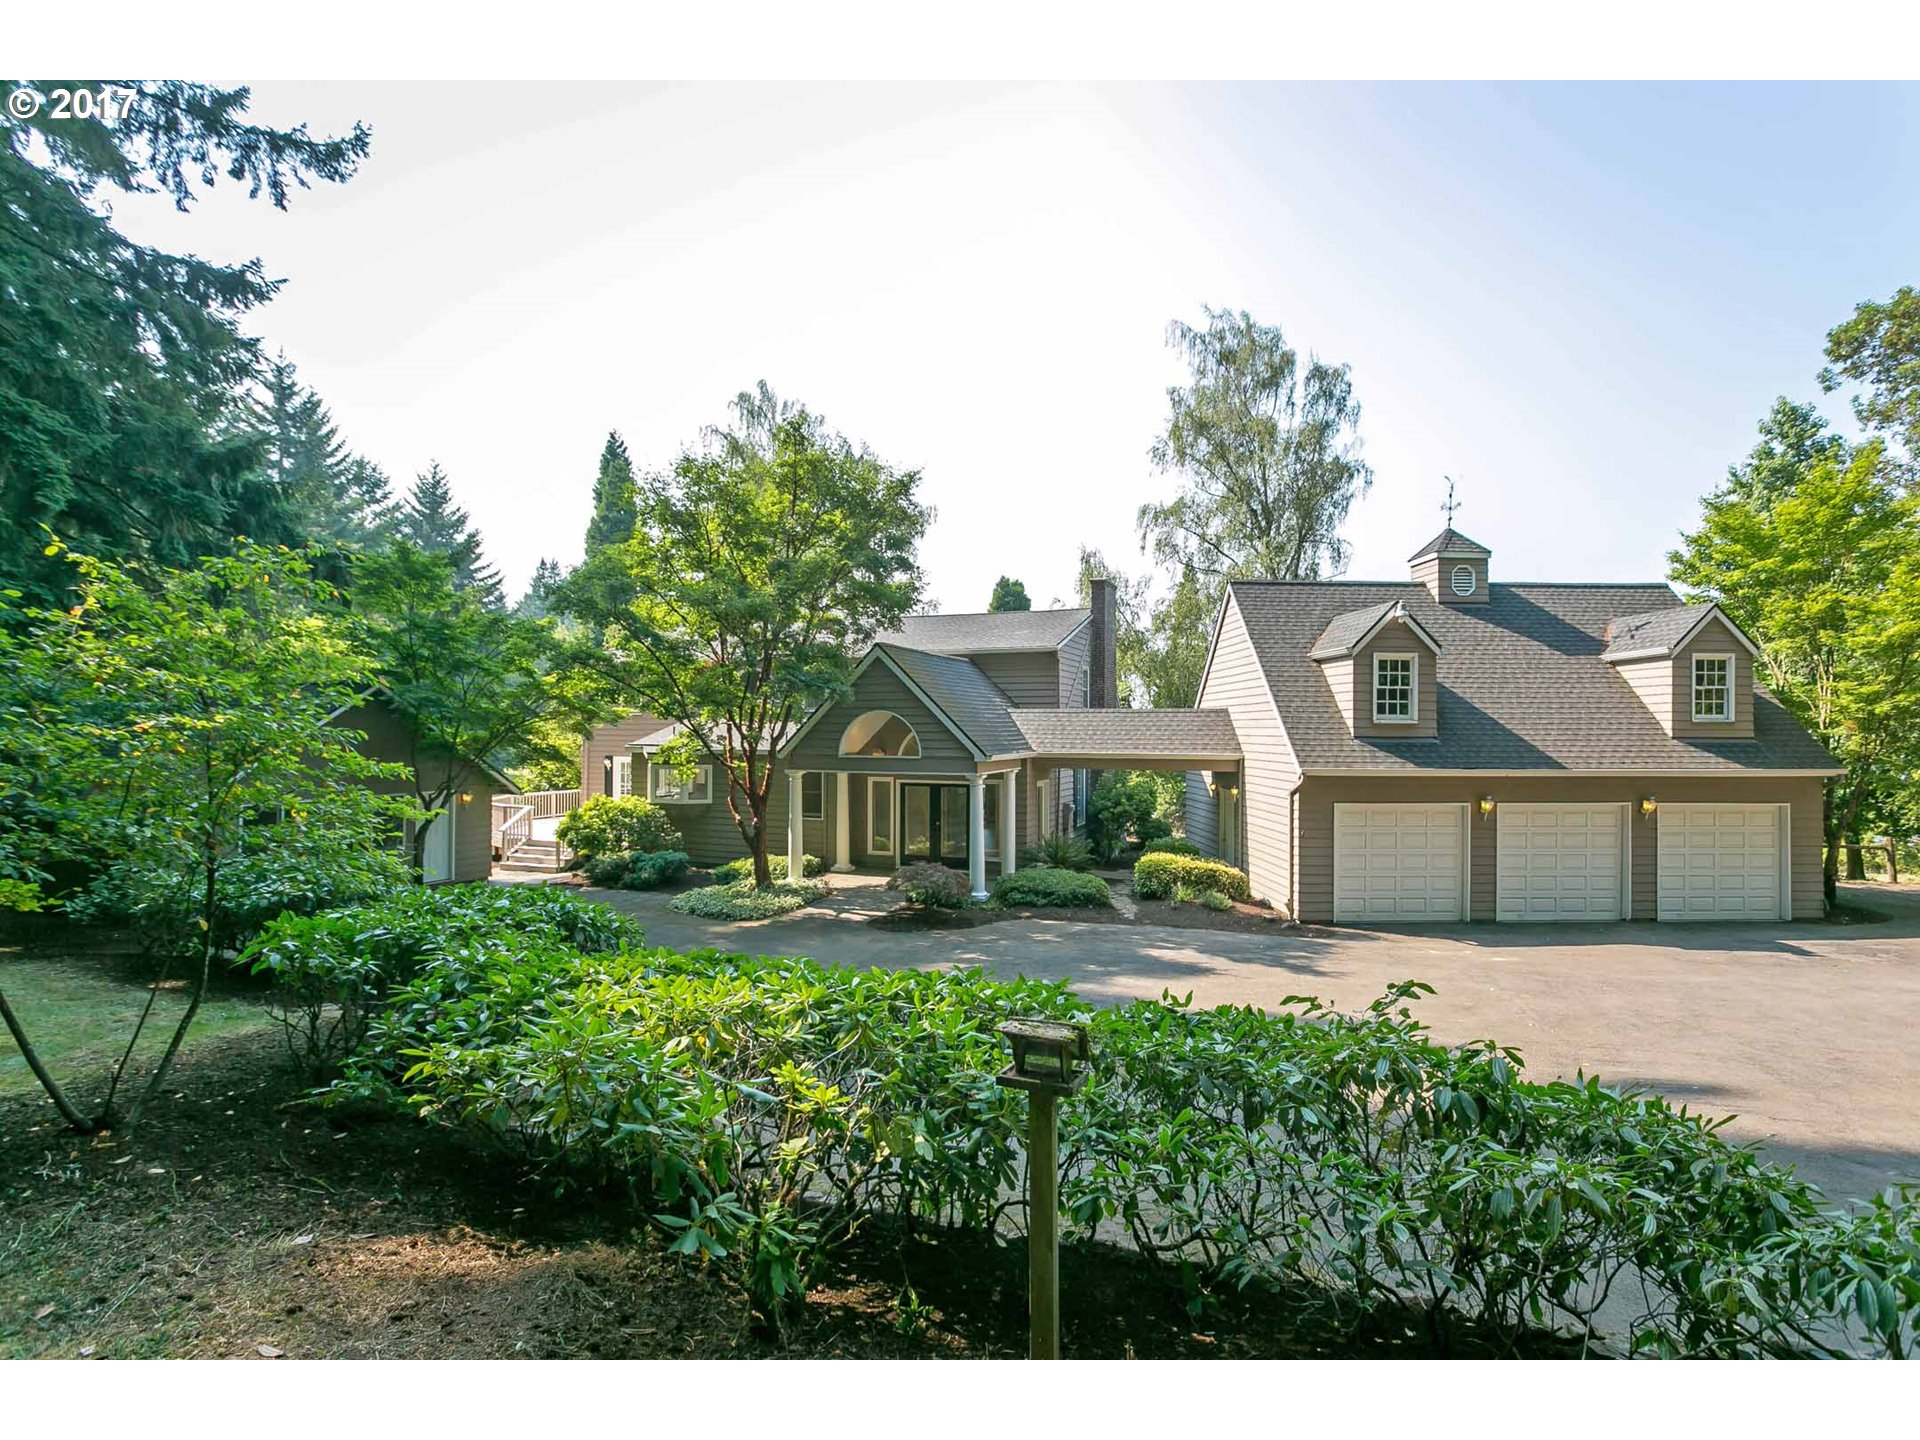 600 ROSEMONT RD, West Linn, OR 97068